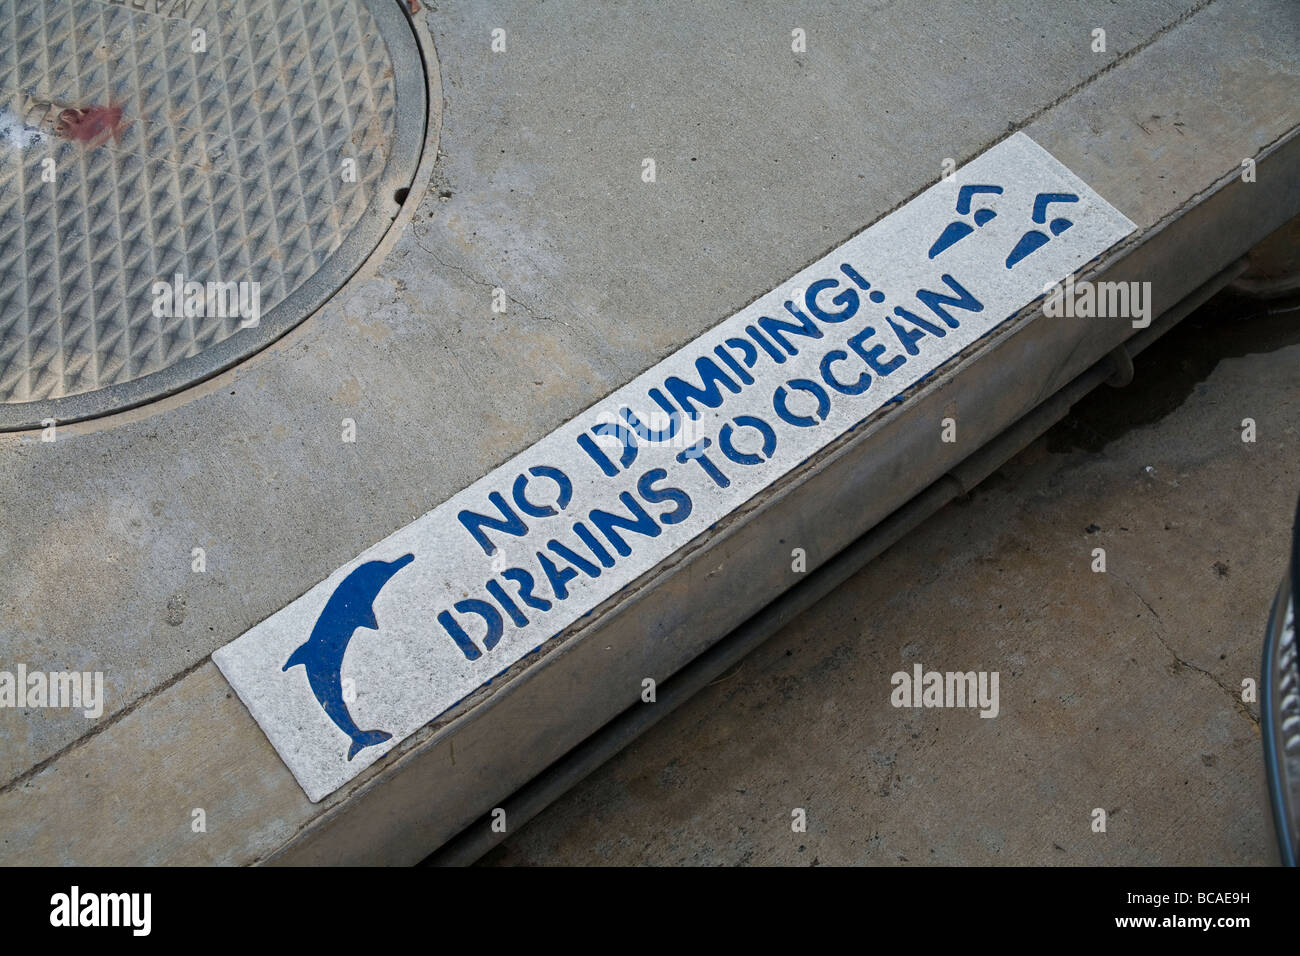 Painted sign on curb warns about dumping into drain - Stock Image